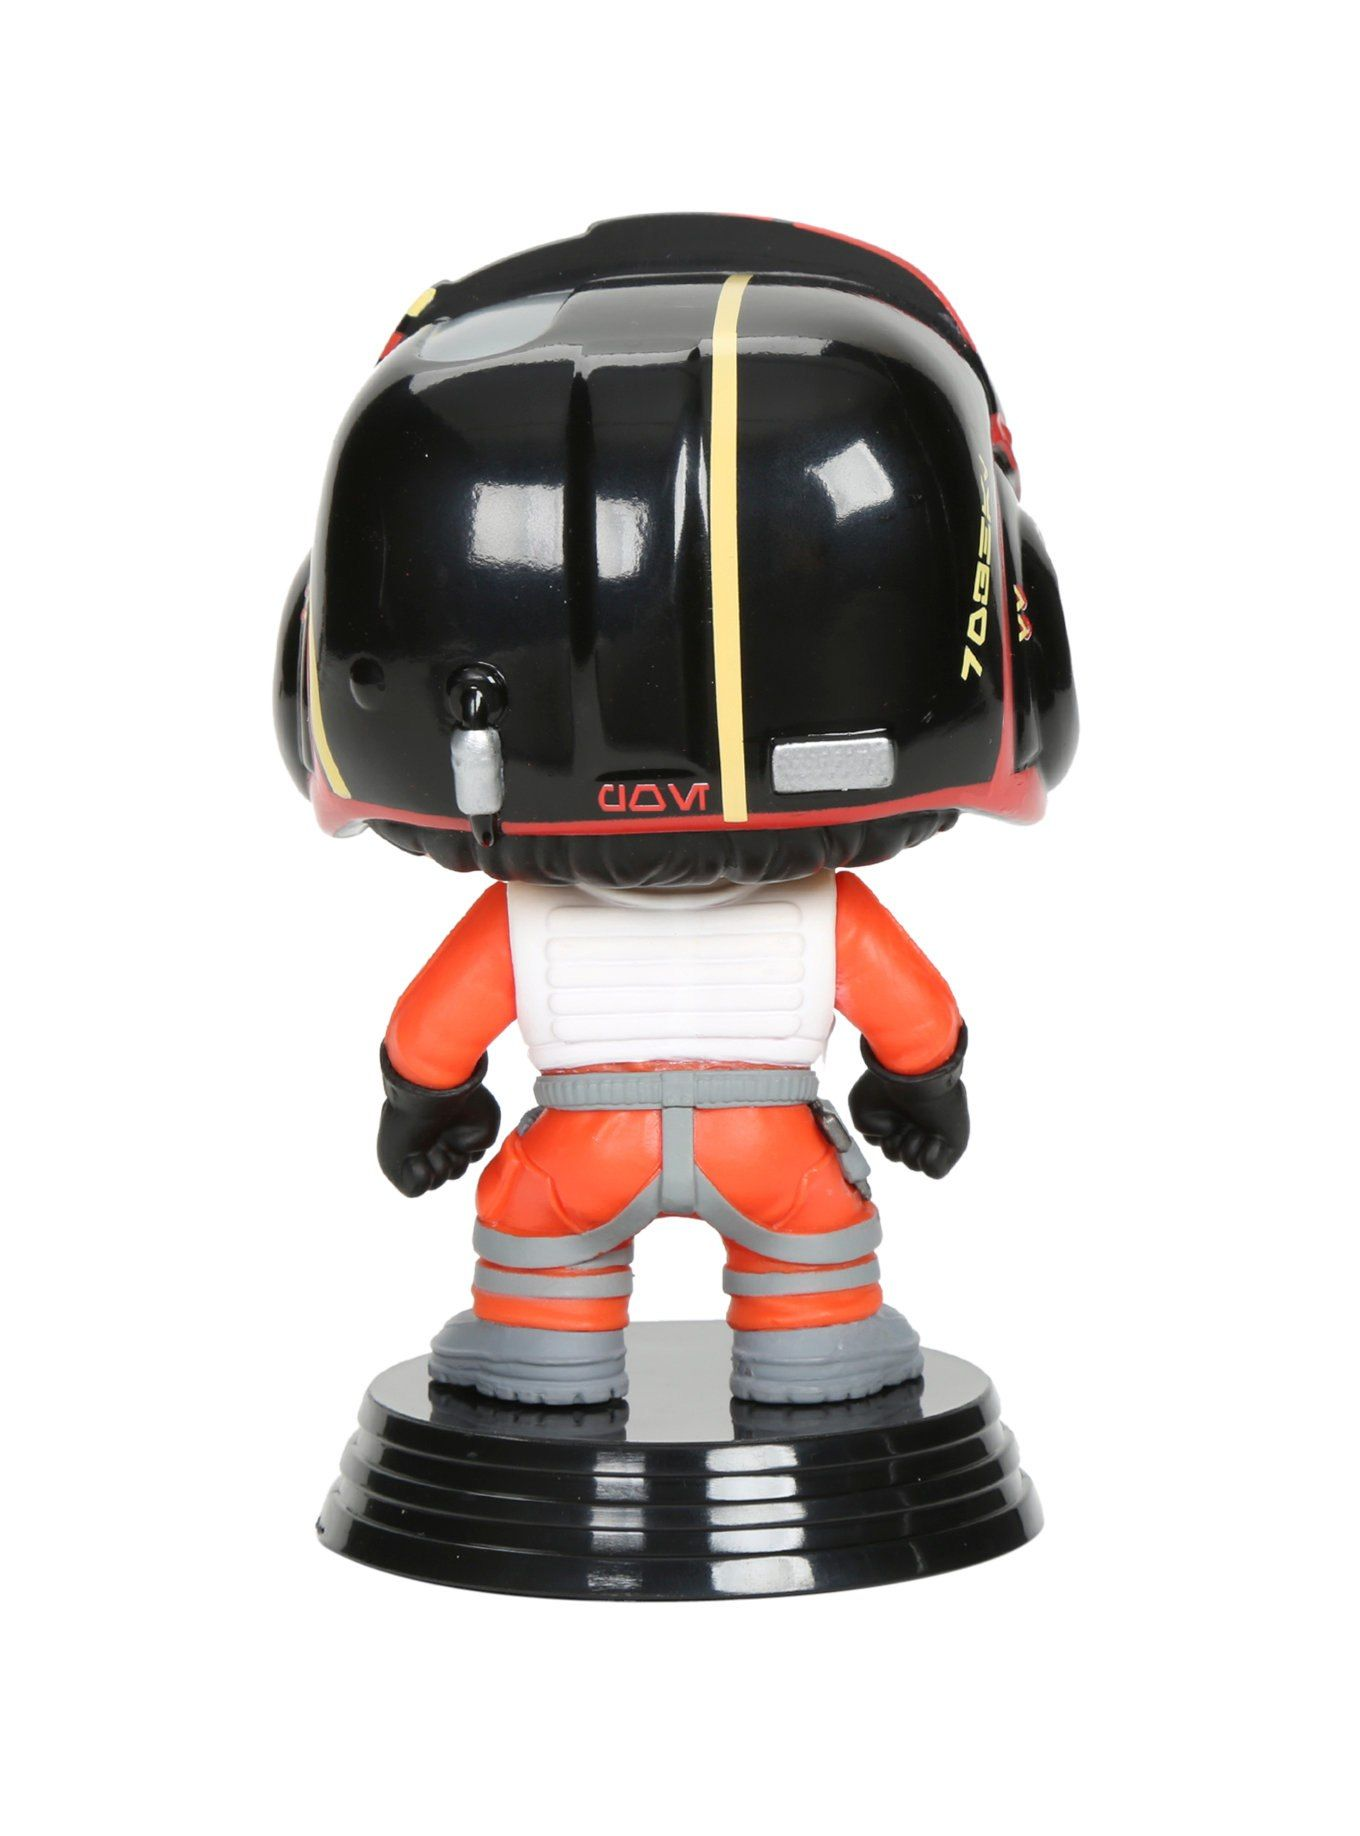 Poe Dameron #62 - Star Wars The Force Awakens ( O Despertar da Força ) - Funko Pop!